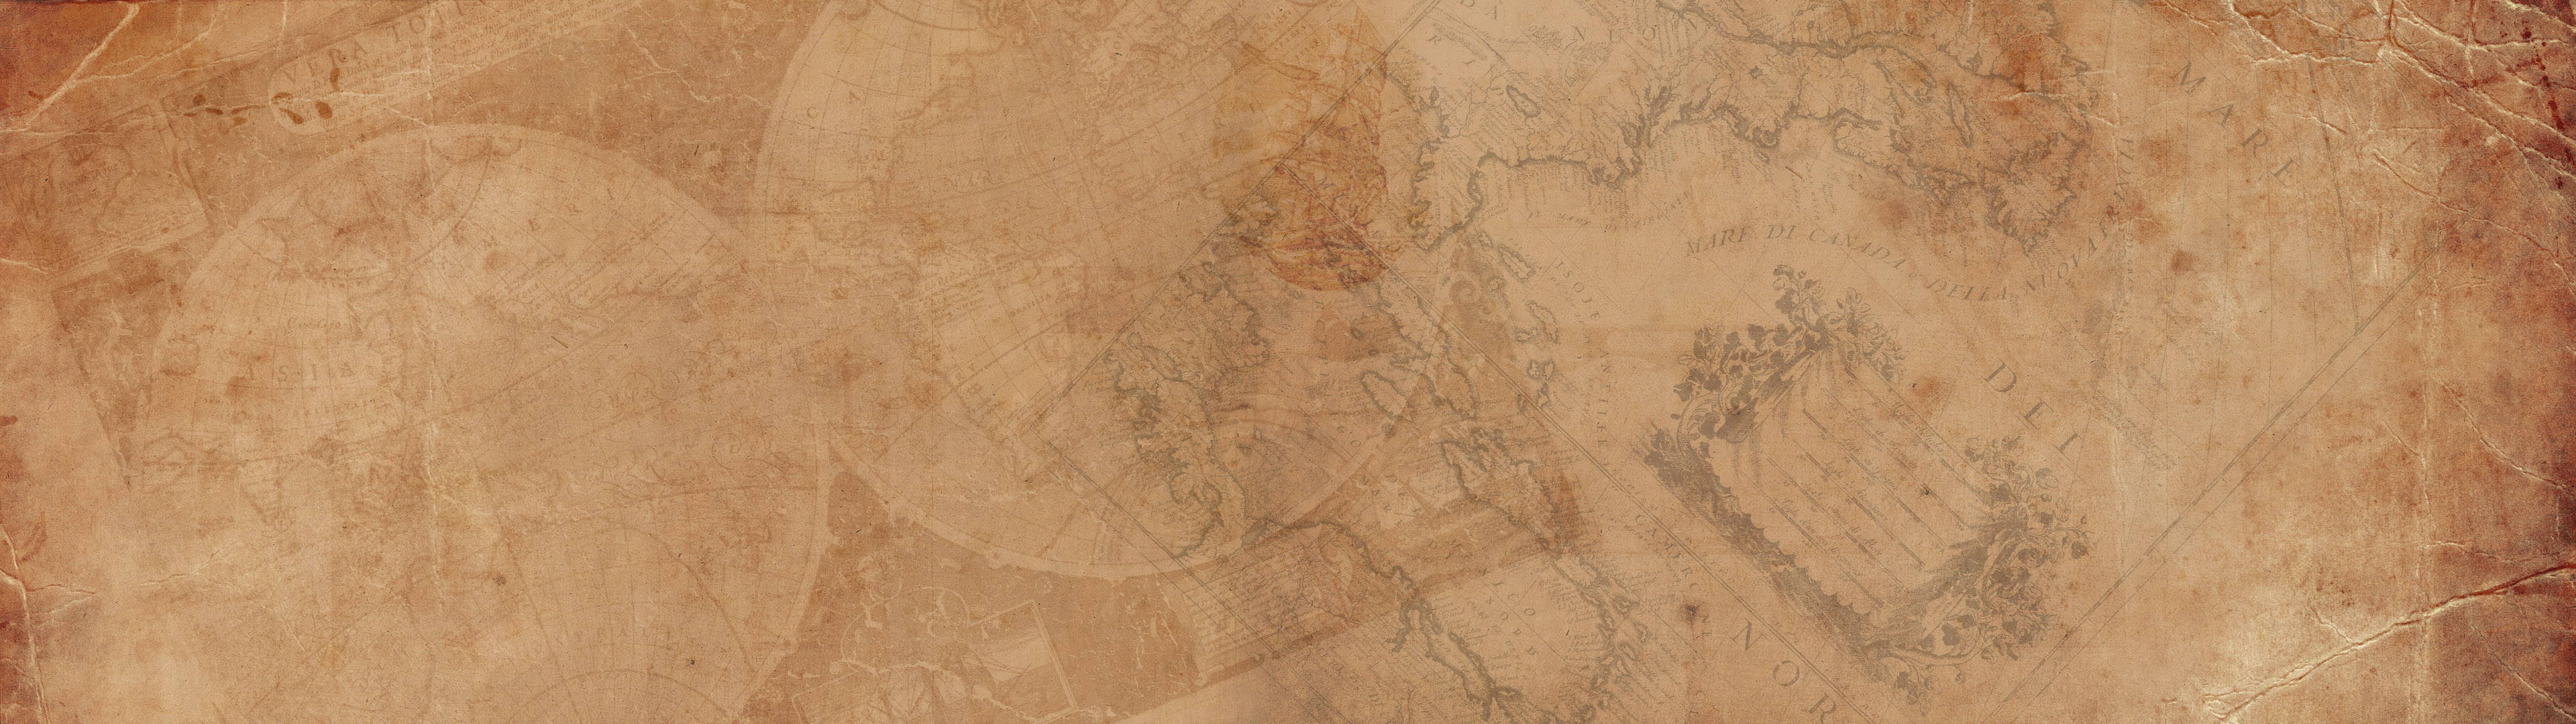 old map Wallpaper maps old